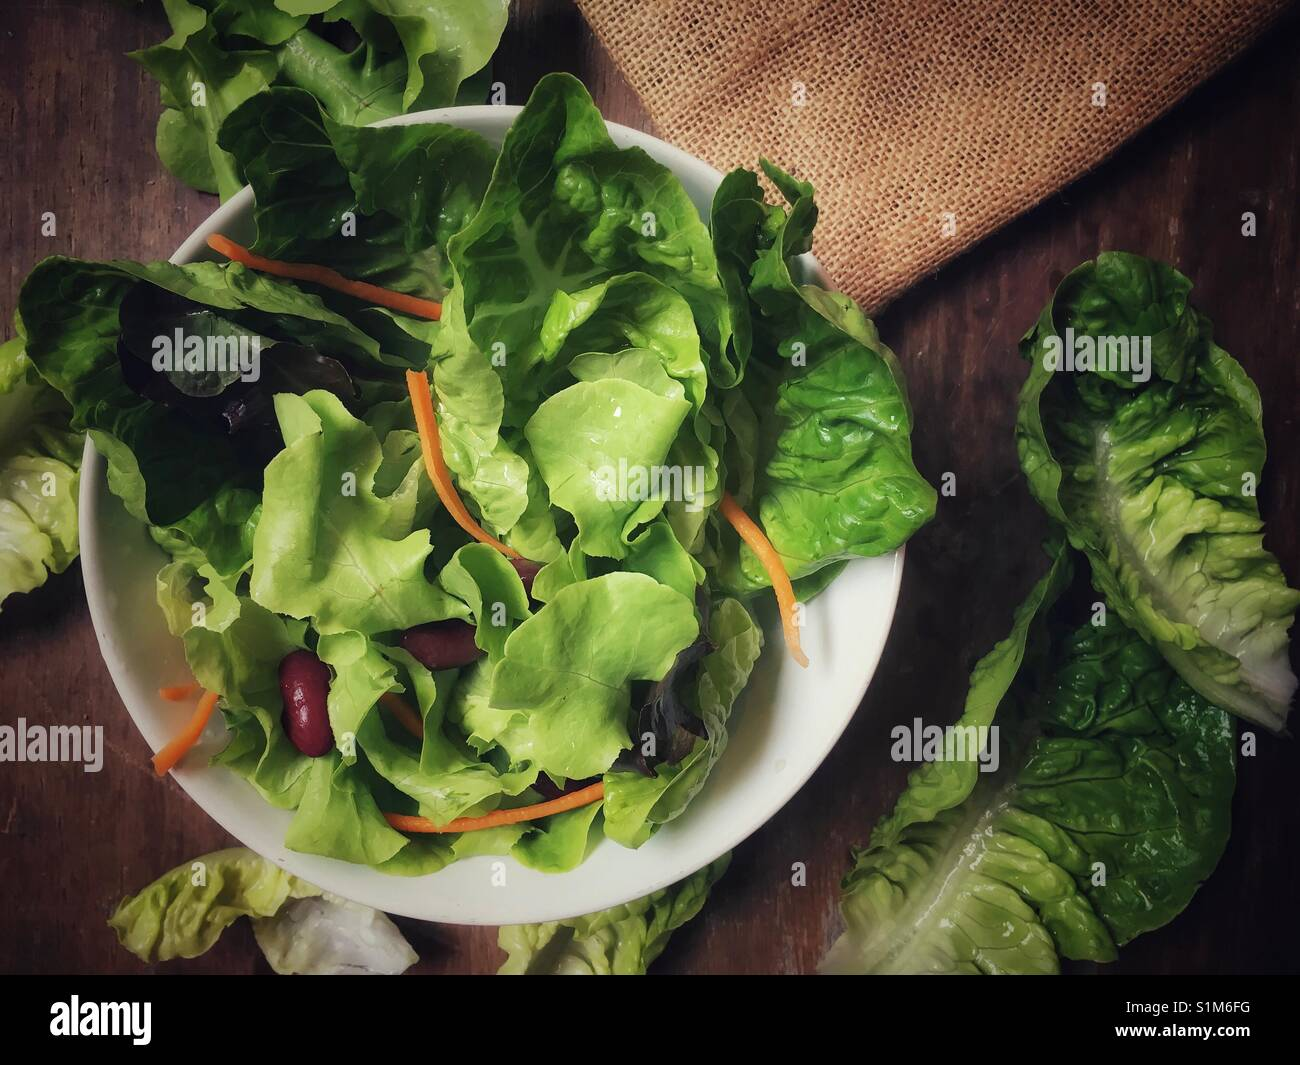 Health benefits of eating a bowl of green salad daily - Stock Image